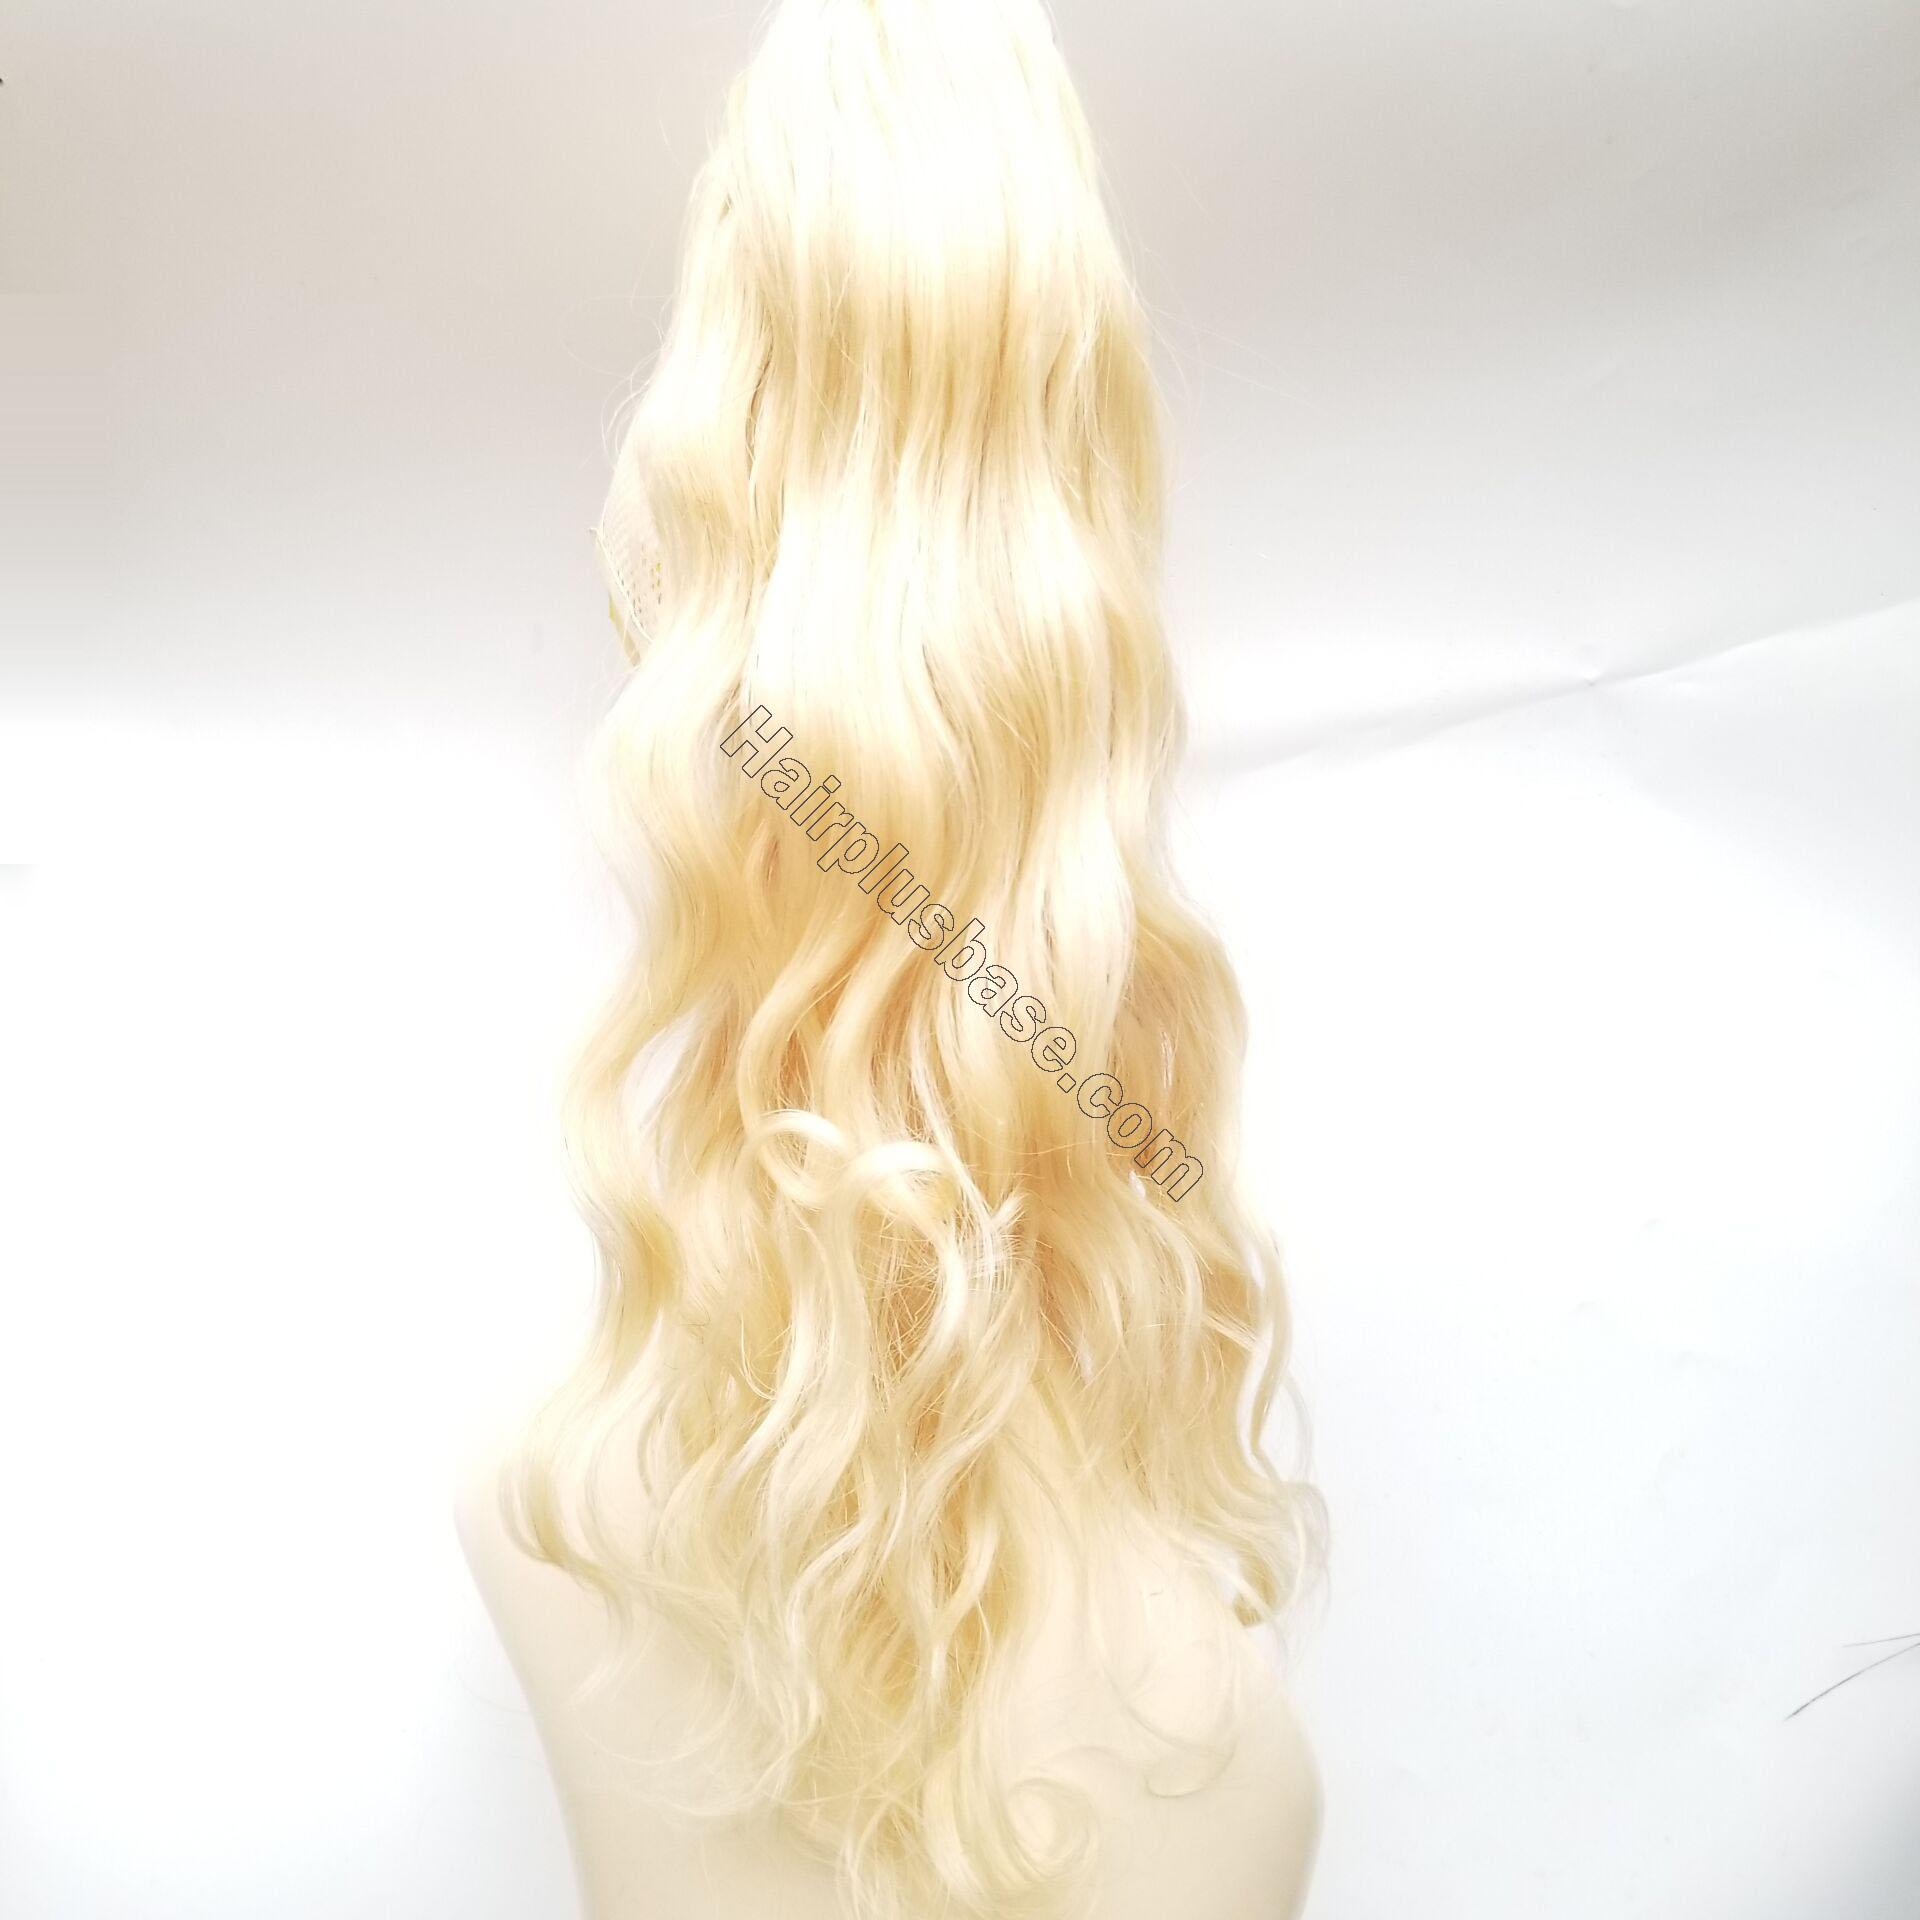 14 - 32 Inch Body Wave Claw Ponytail Extension Human Hair #613 Bleach Blonde 3